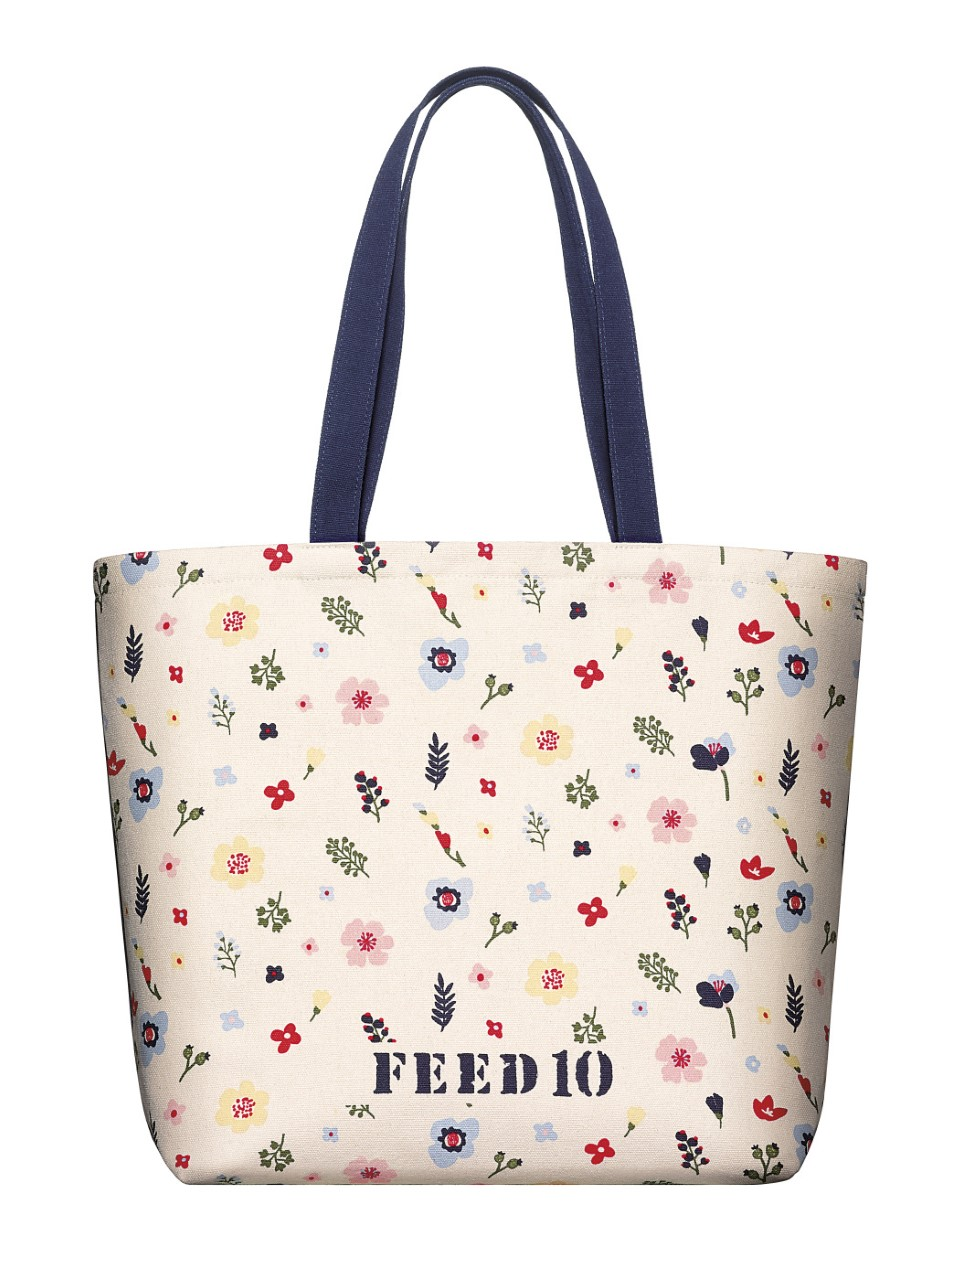 The FEED 10 tote will be offered at macys.com filled with Clarins beauty products.